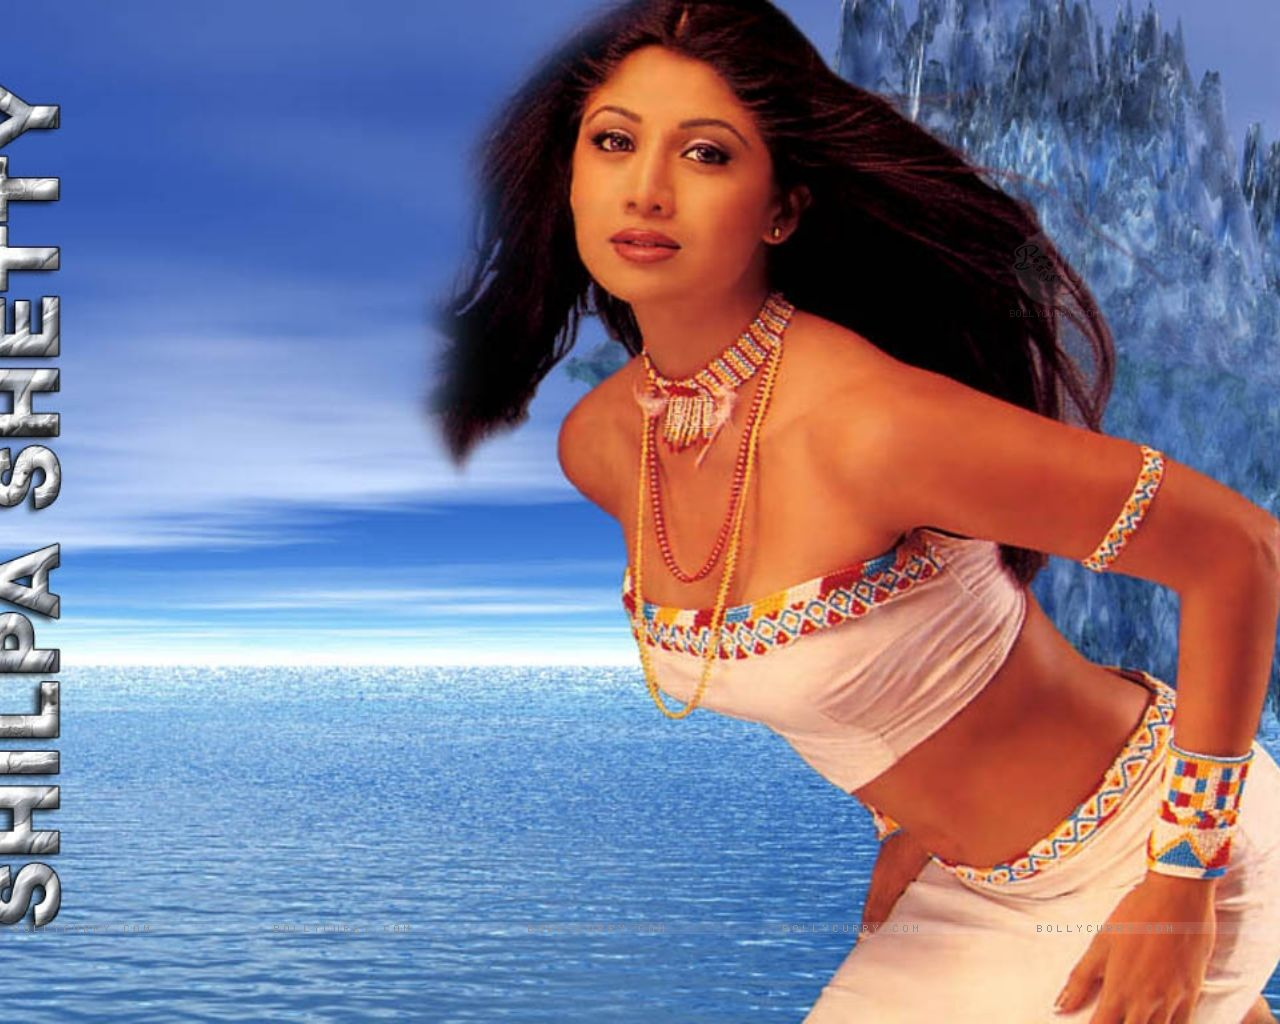 Hd Wallpaper Gallery Bollywood Actress Shilpa Shetty -5583